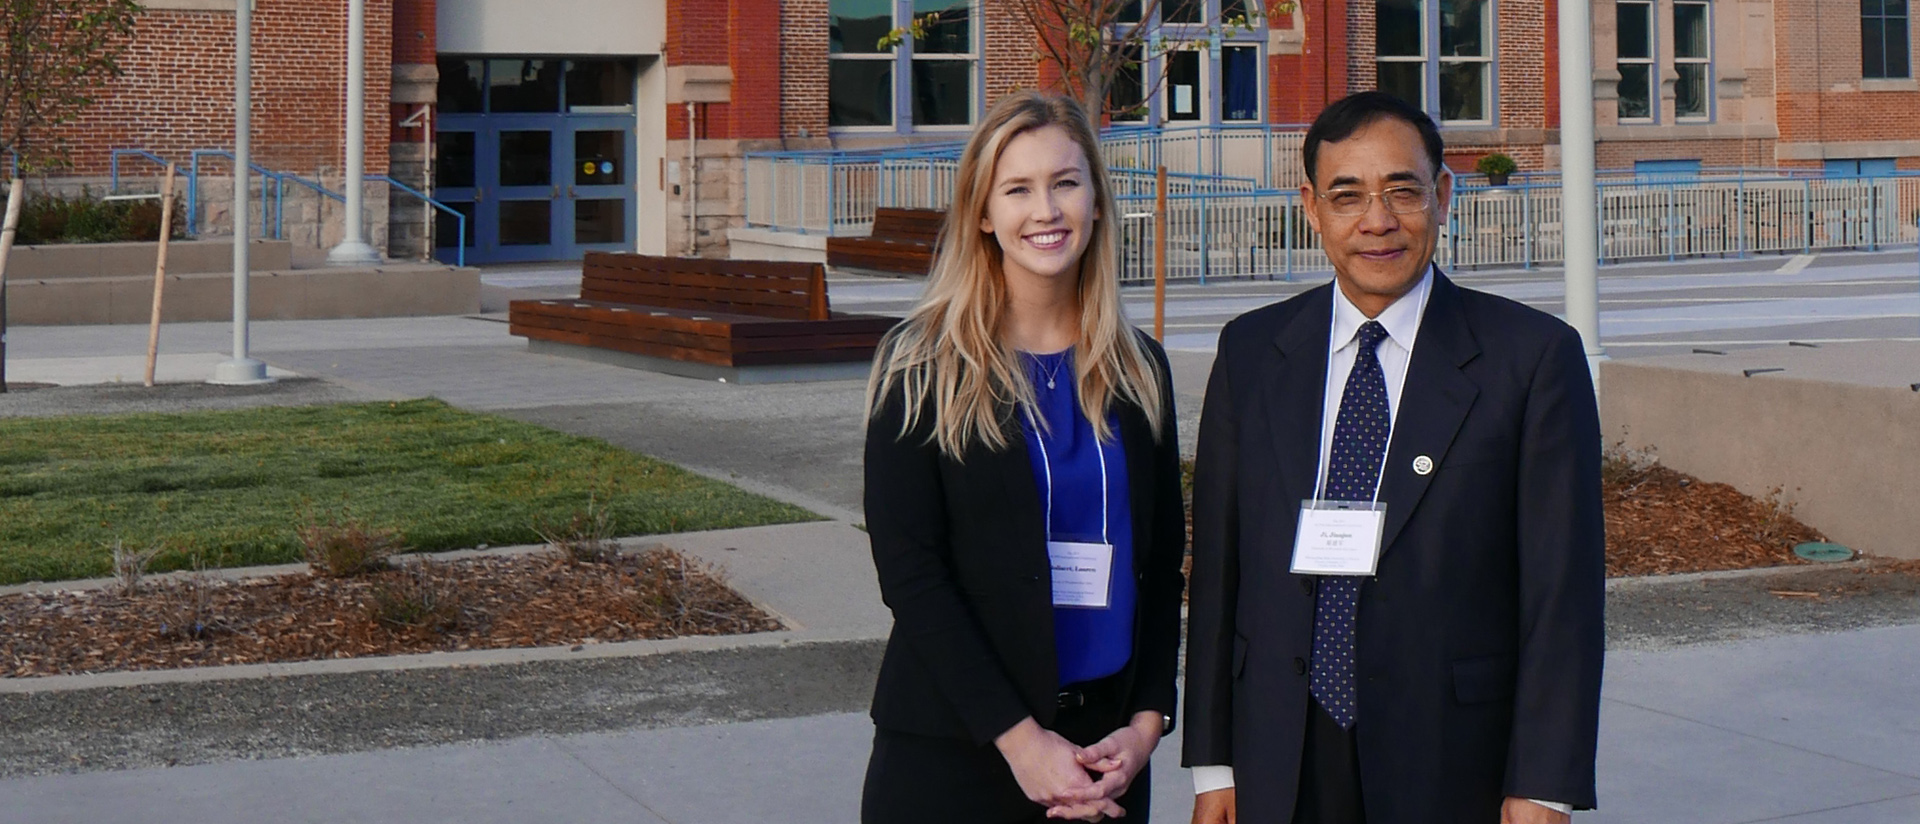 Dr. Jianjun Ji and sociology grad Lauren Bollaert at Denver conference